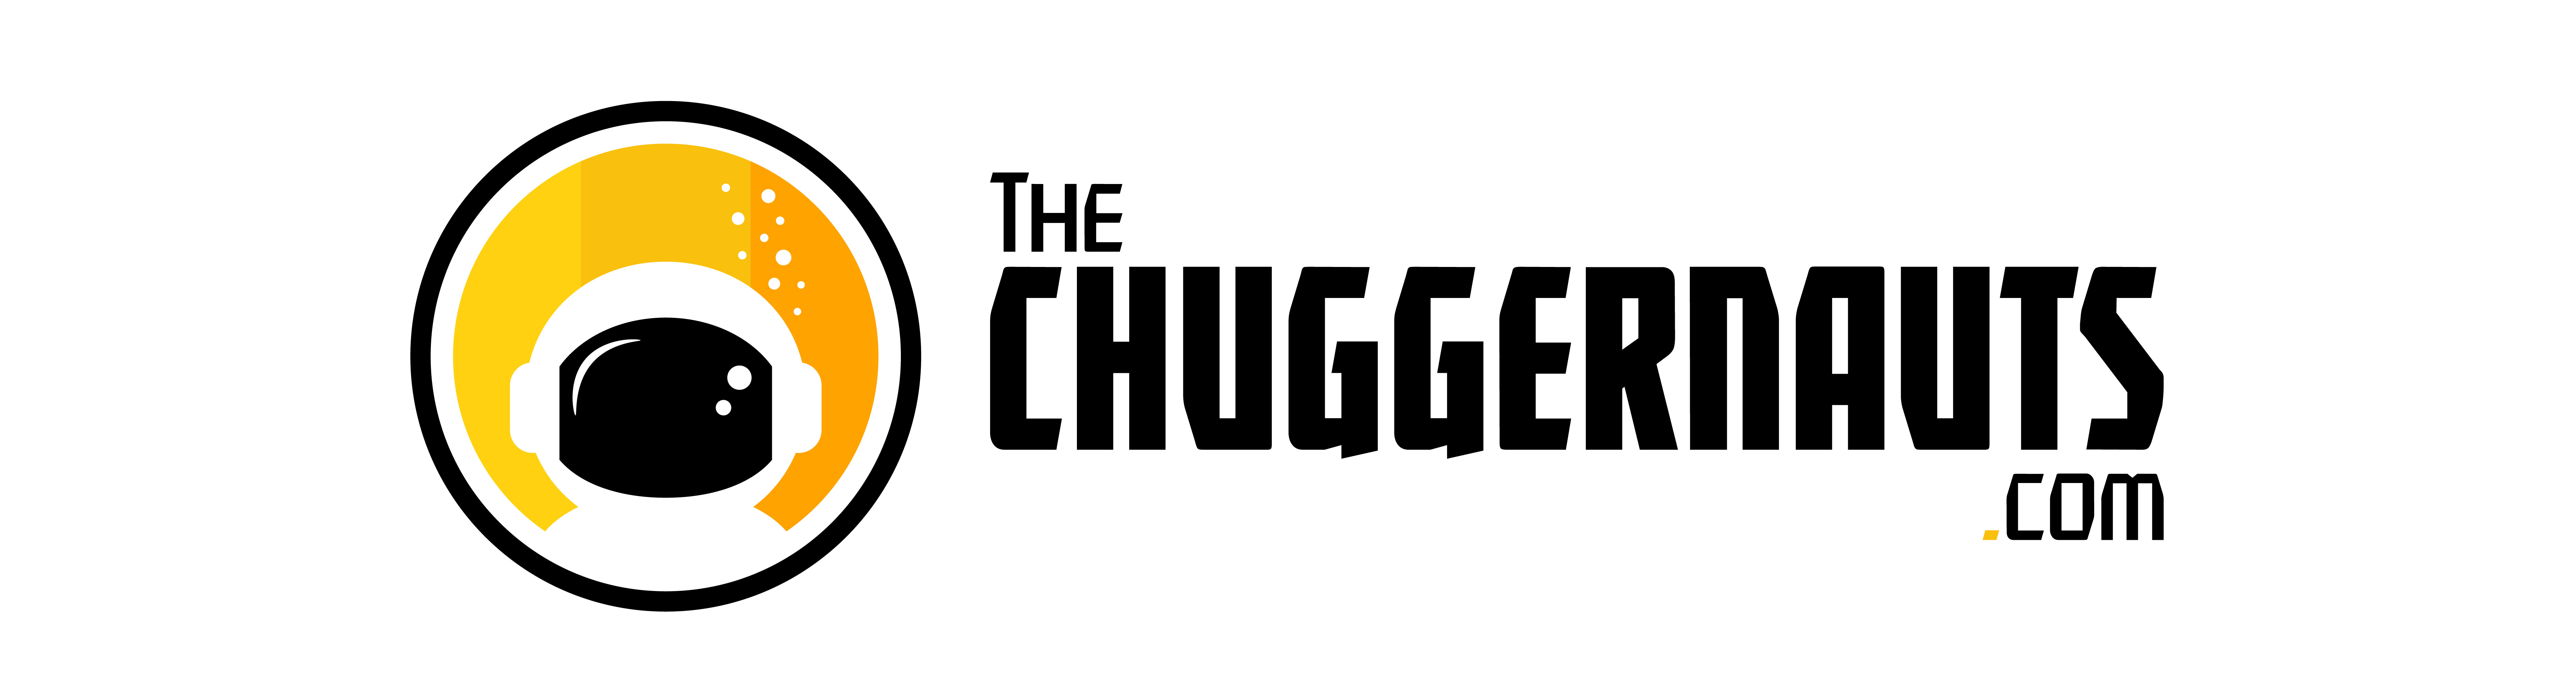 The Chuggernauts